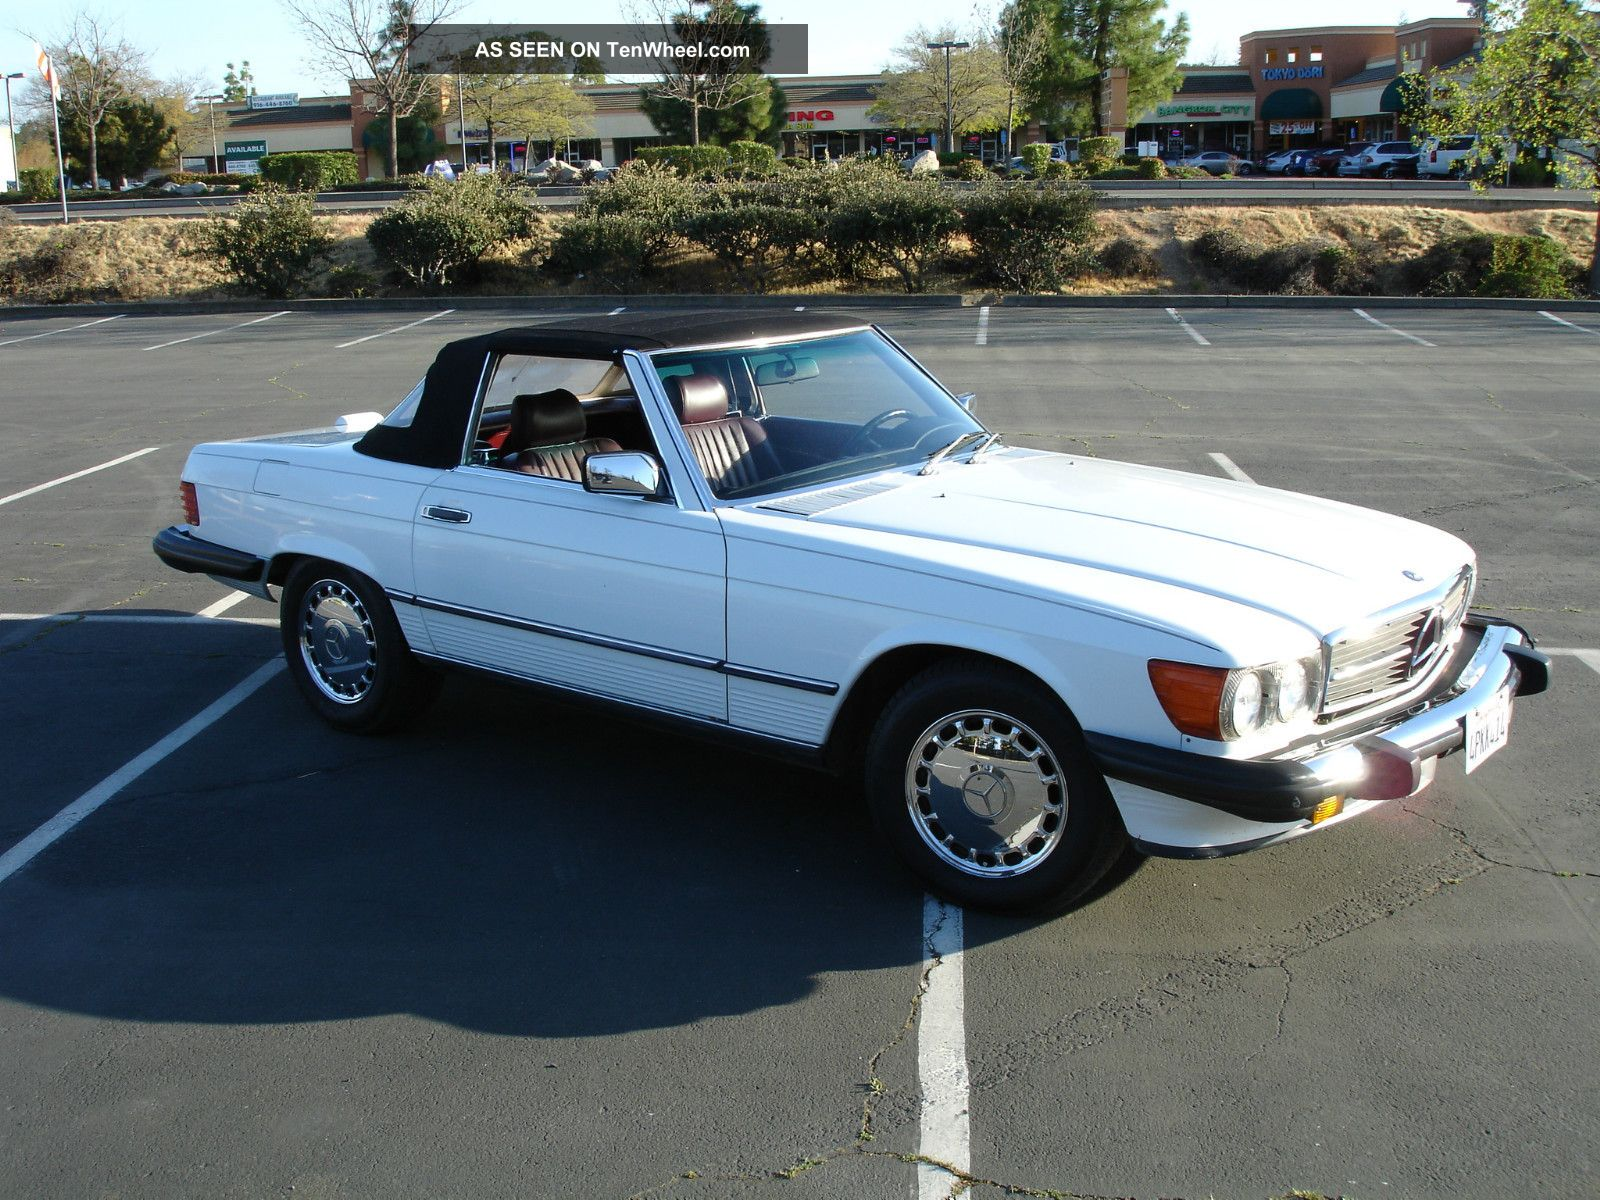 E Fb A Fad B C B furthermore Mercedes Sl Convertible Mercedes Benz Lgw also Gallery Pmx Newvintage further Dodge Dakota Factory Convertible X together with A Ca Dd Db Da Eed D E Dodge Dakota Pickup. on 89 dodge dakota sport convertible